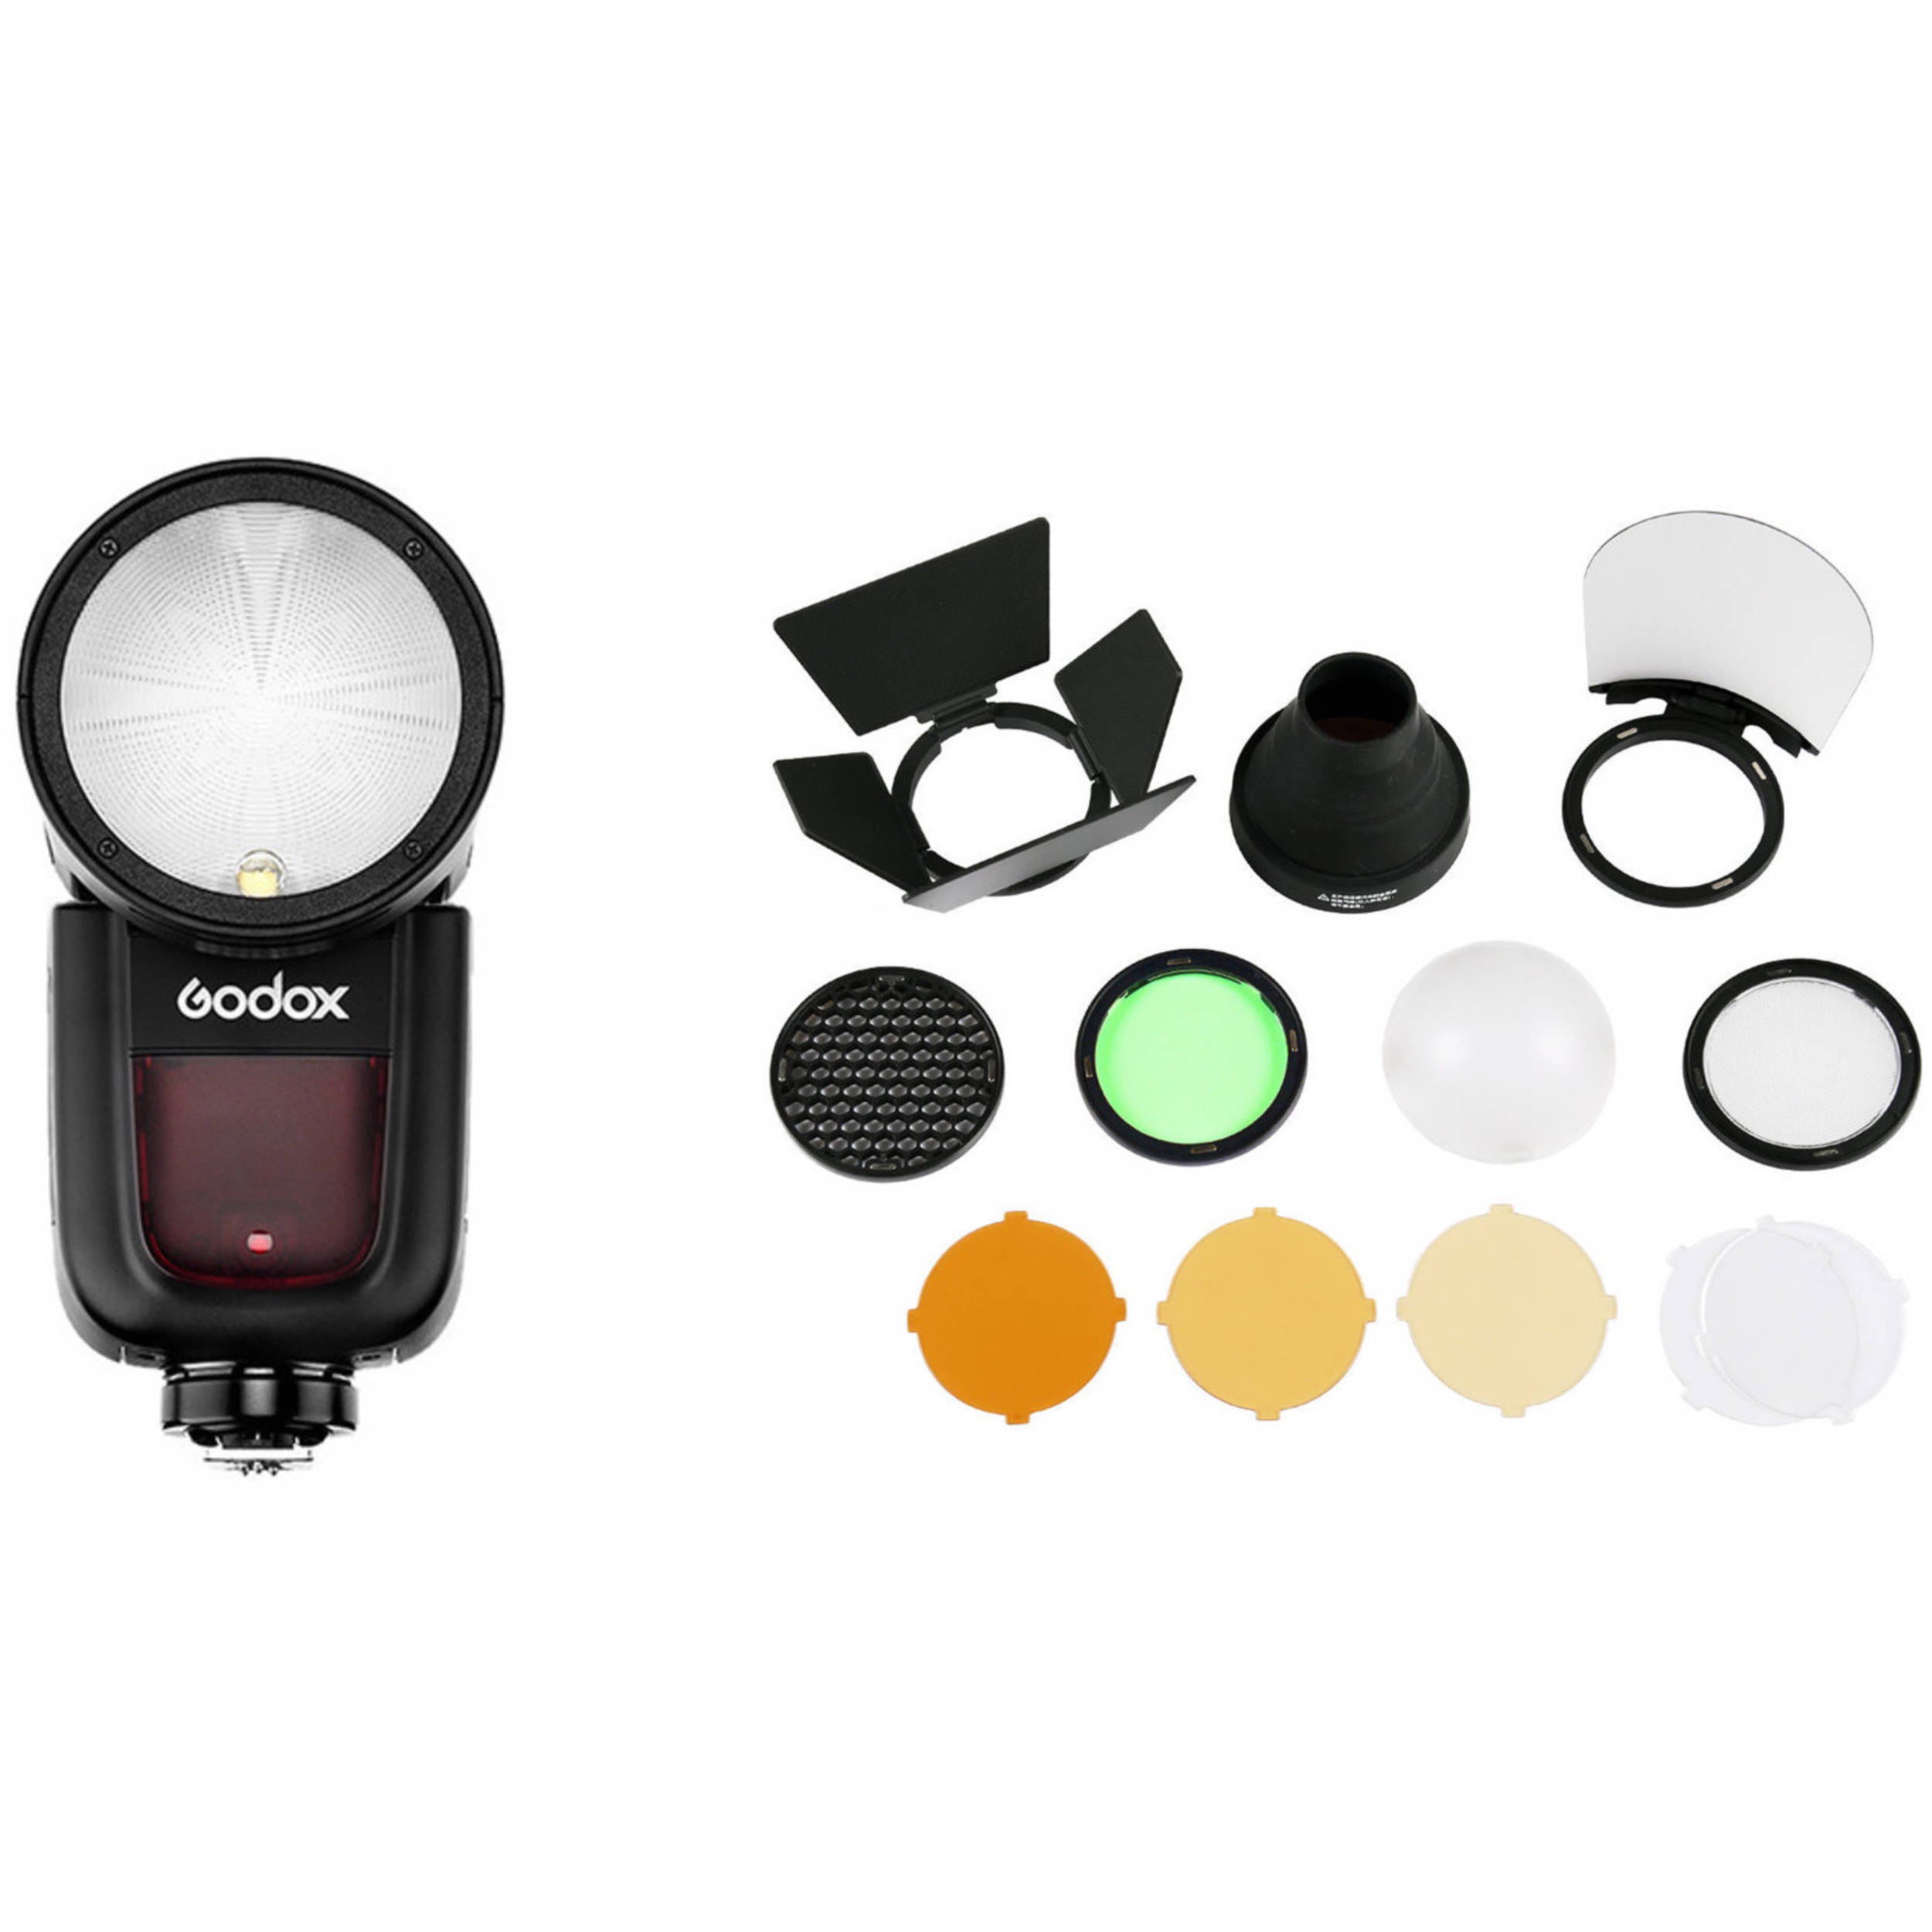 Godox Accessories & Supplies for Electronics in Tanzania